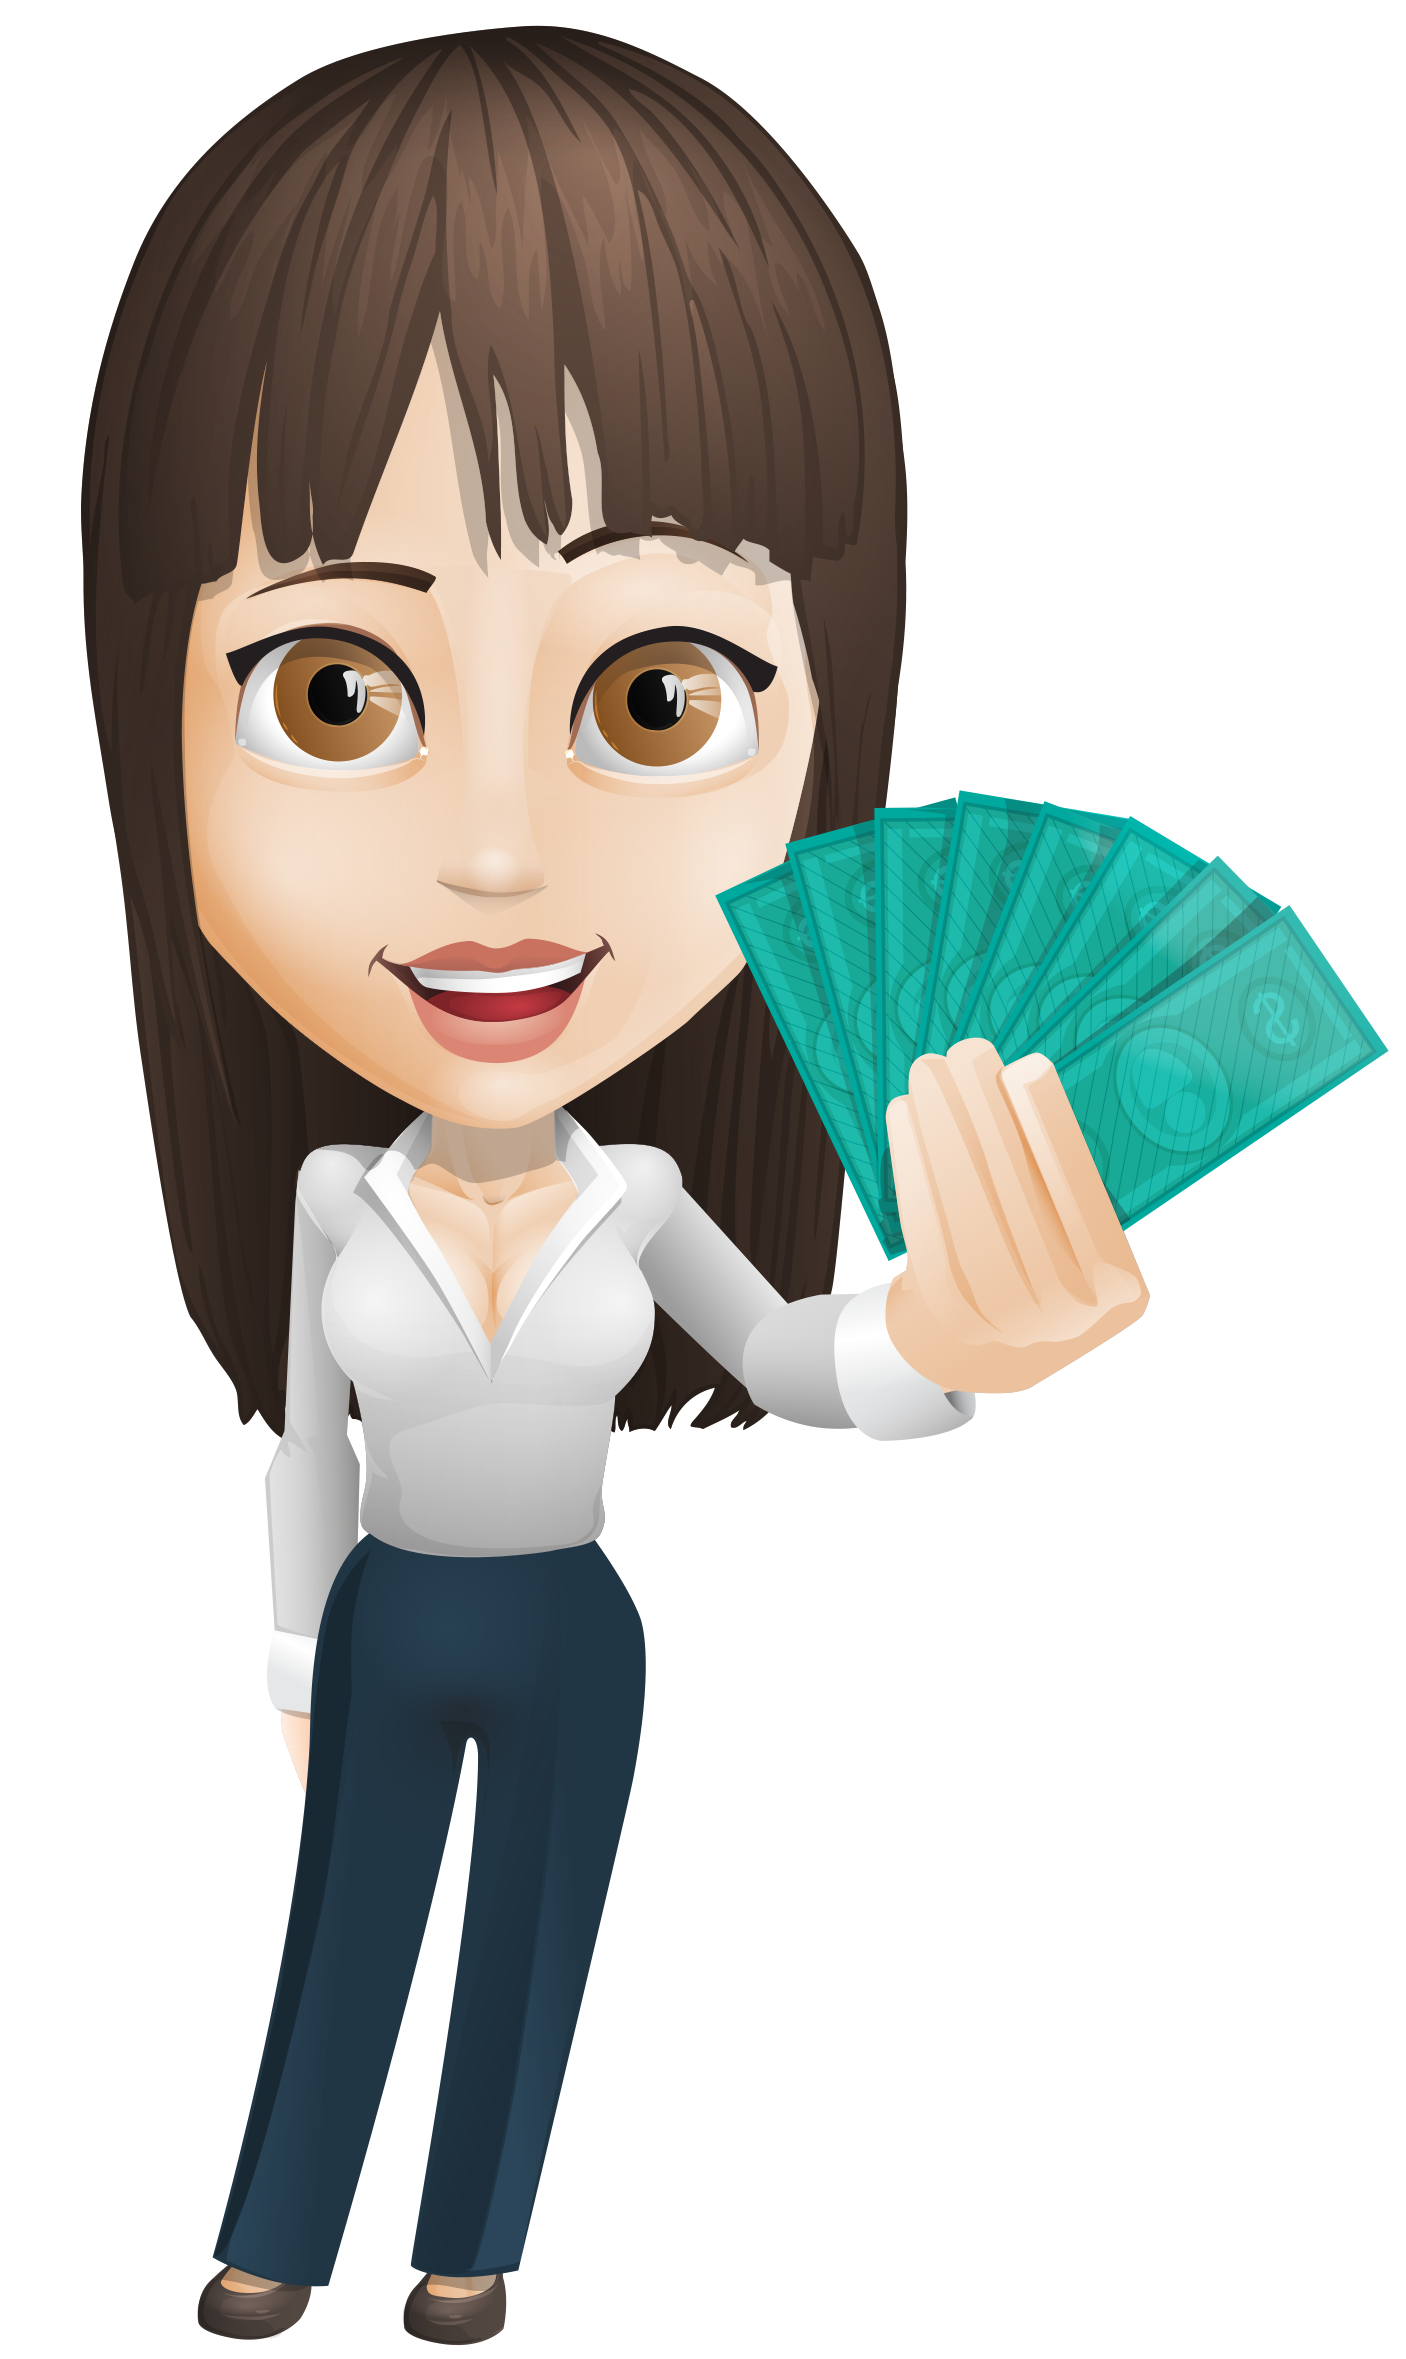 Woman carrying money clipart transparent library Businesswoman Vector Holding Money - http://www.dailystockphoto.net ... transparent library